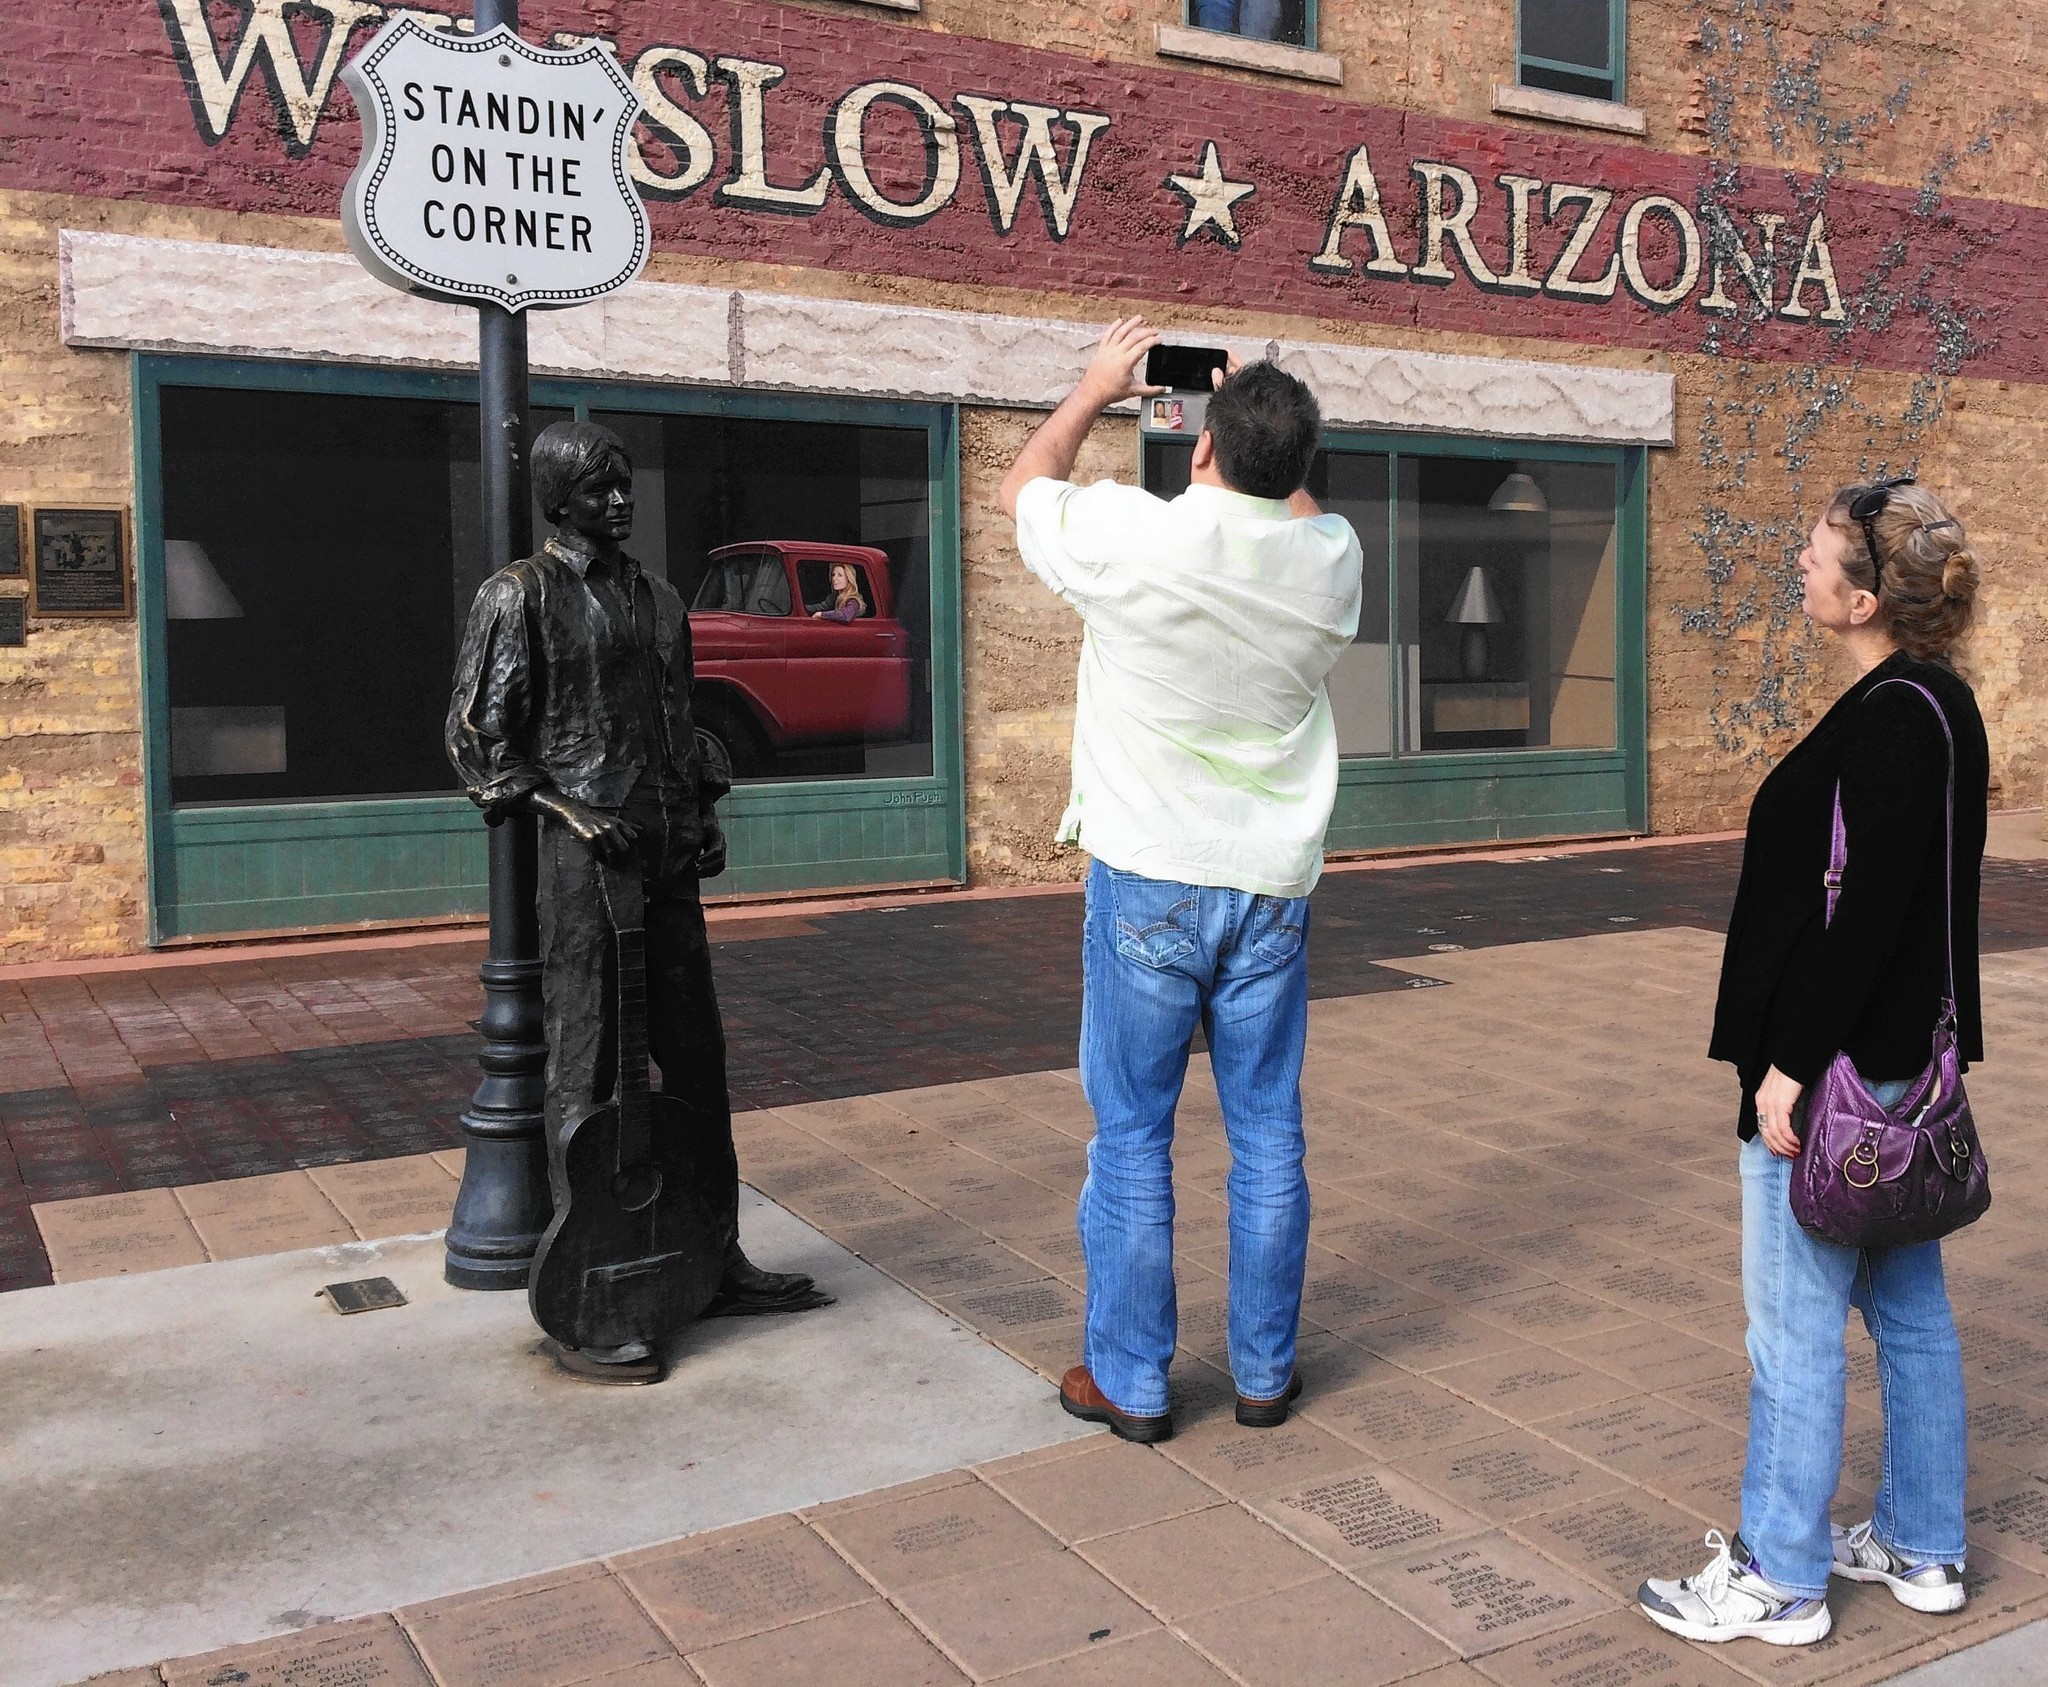 It s the corner and statue that made winslow arizona famous la times